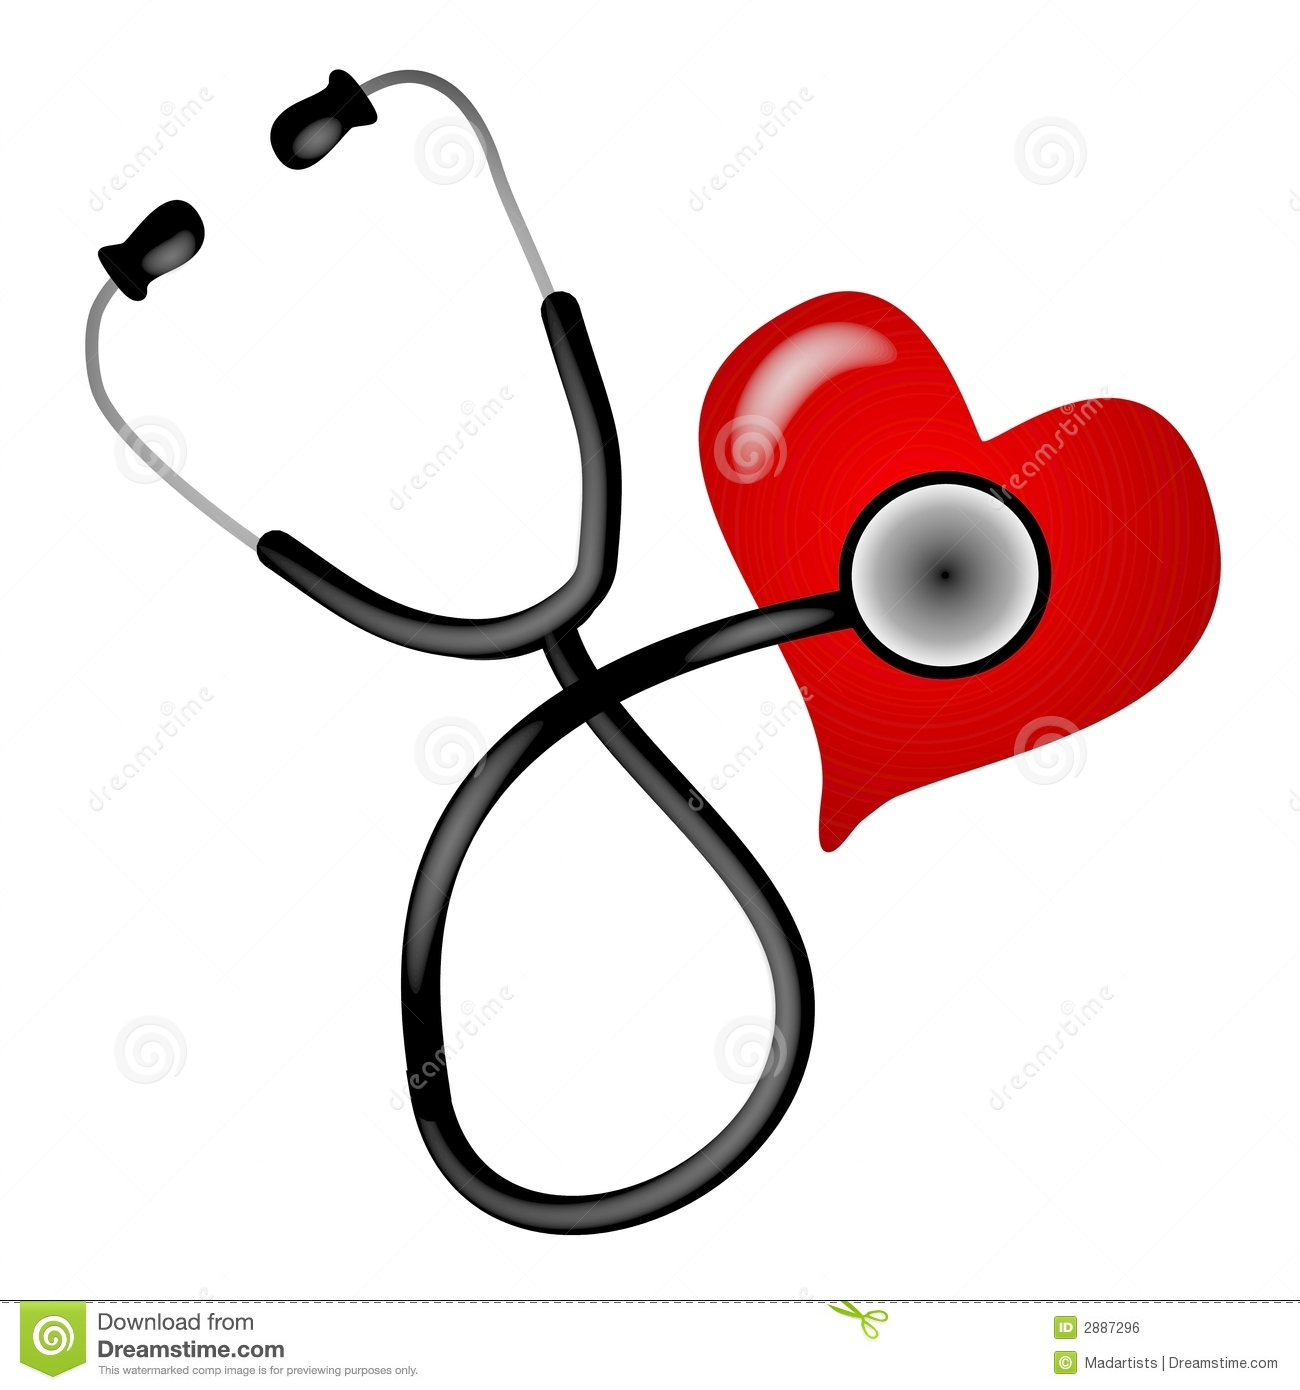 Clip Art Stethoscope Clip Art stethoscope stock illustrations 18048 heart illustration royalty free image